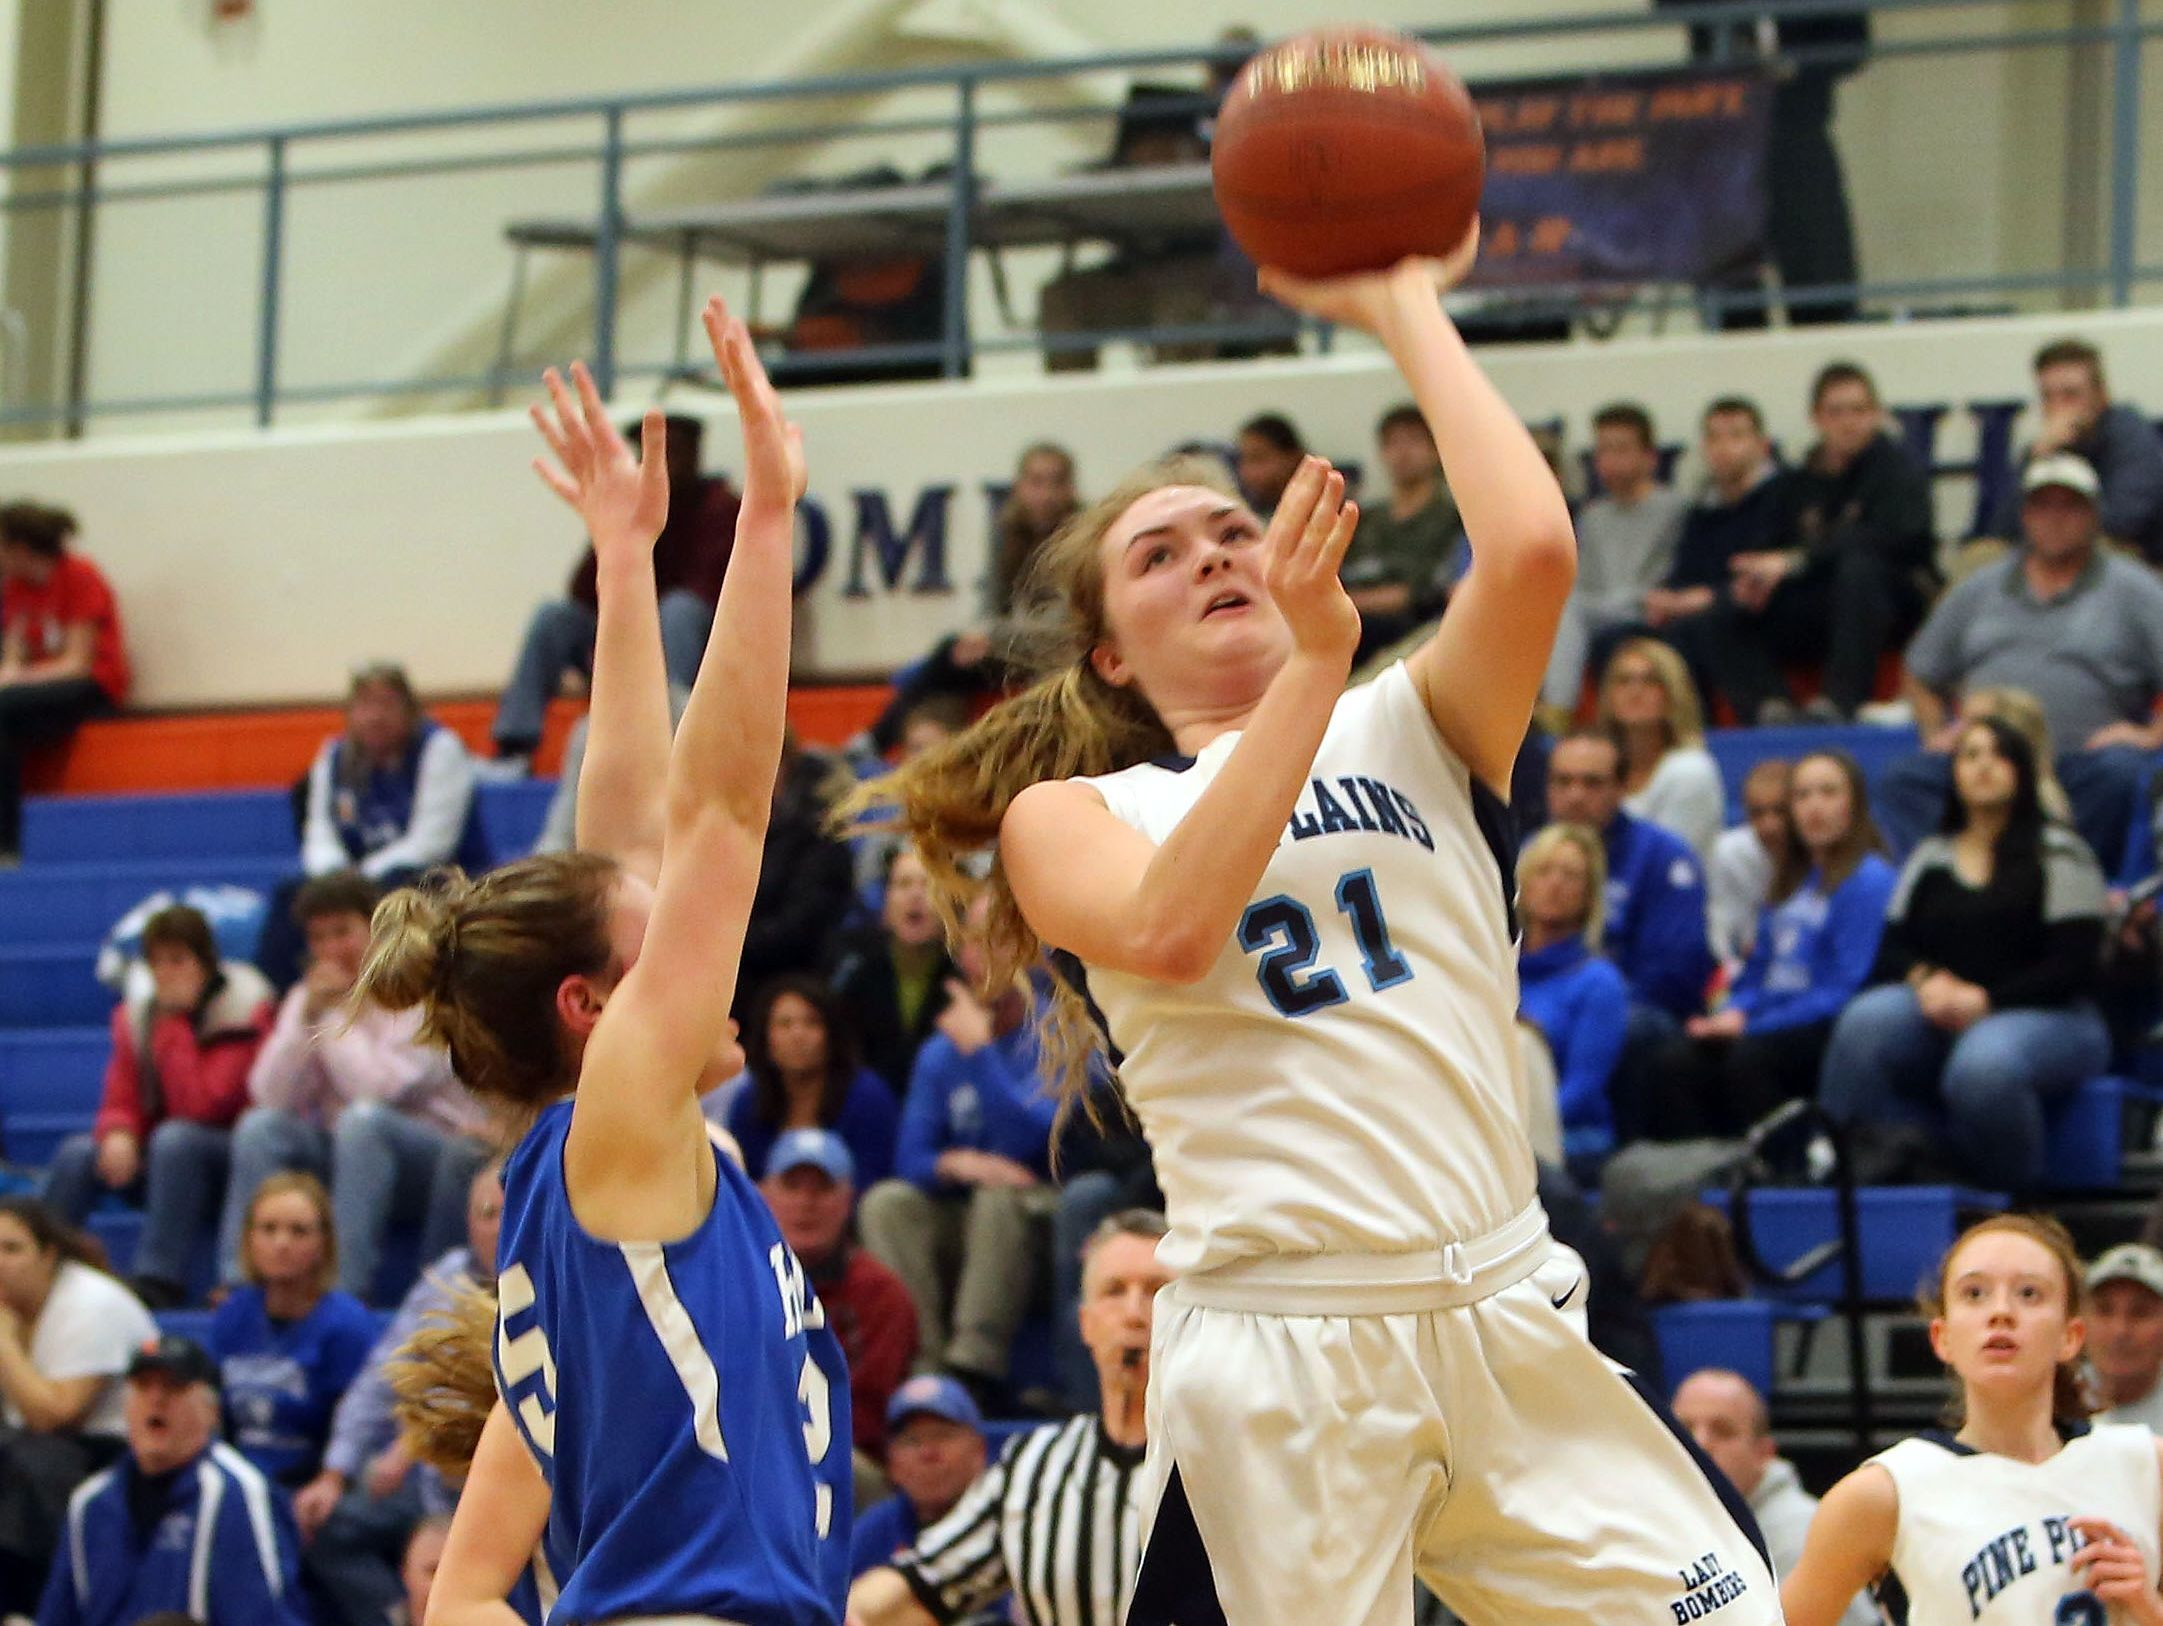 Pine Plains' Isabella Starzyk (21) goes up for a shot in front of Haldane's Abbey Stowell (25) during the state regional semifinal at SUNY New Paltz March 7, 2017.